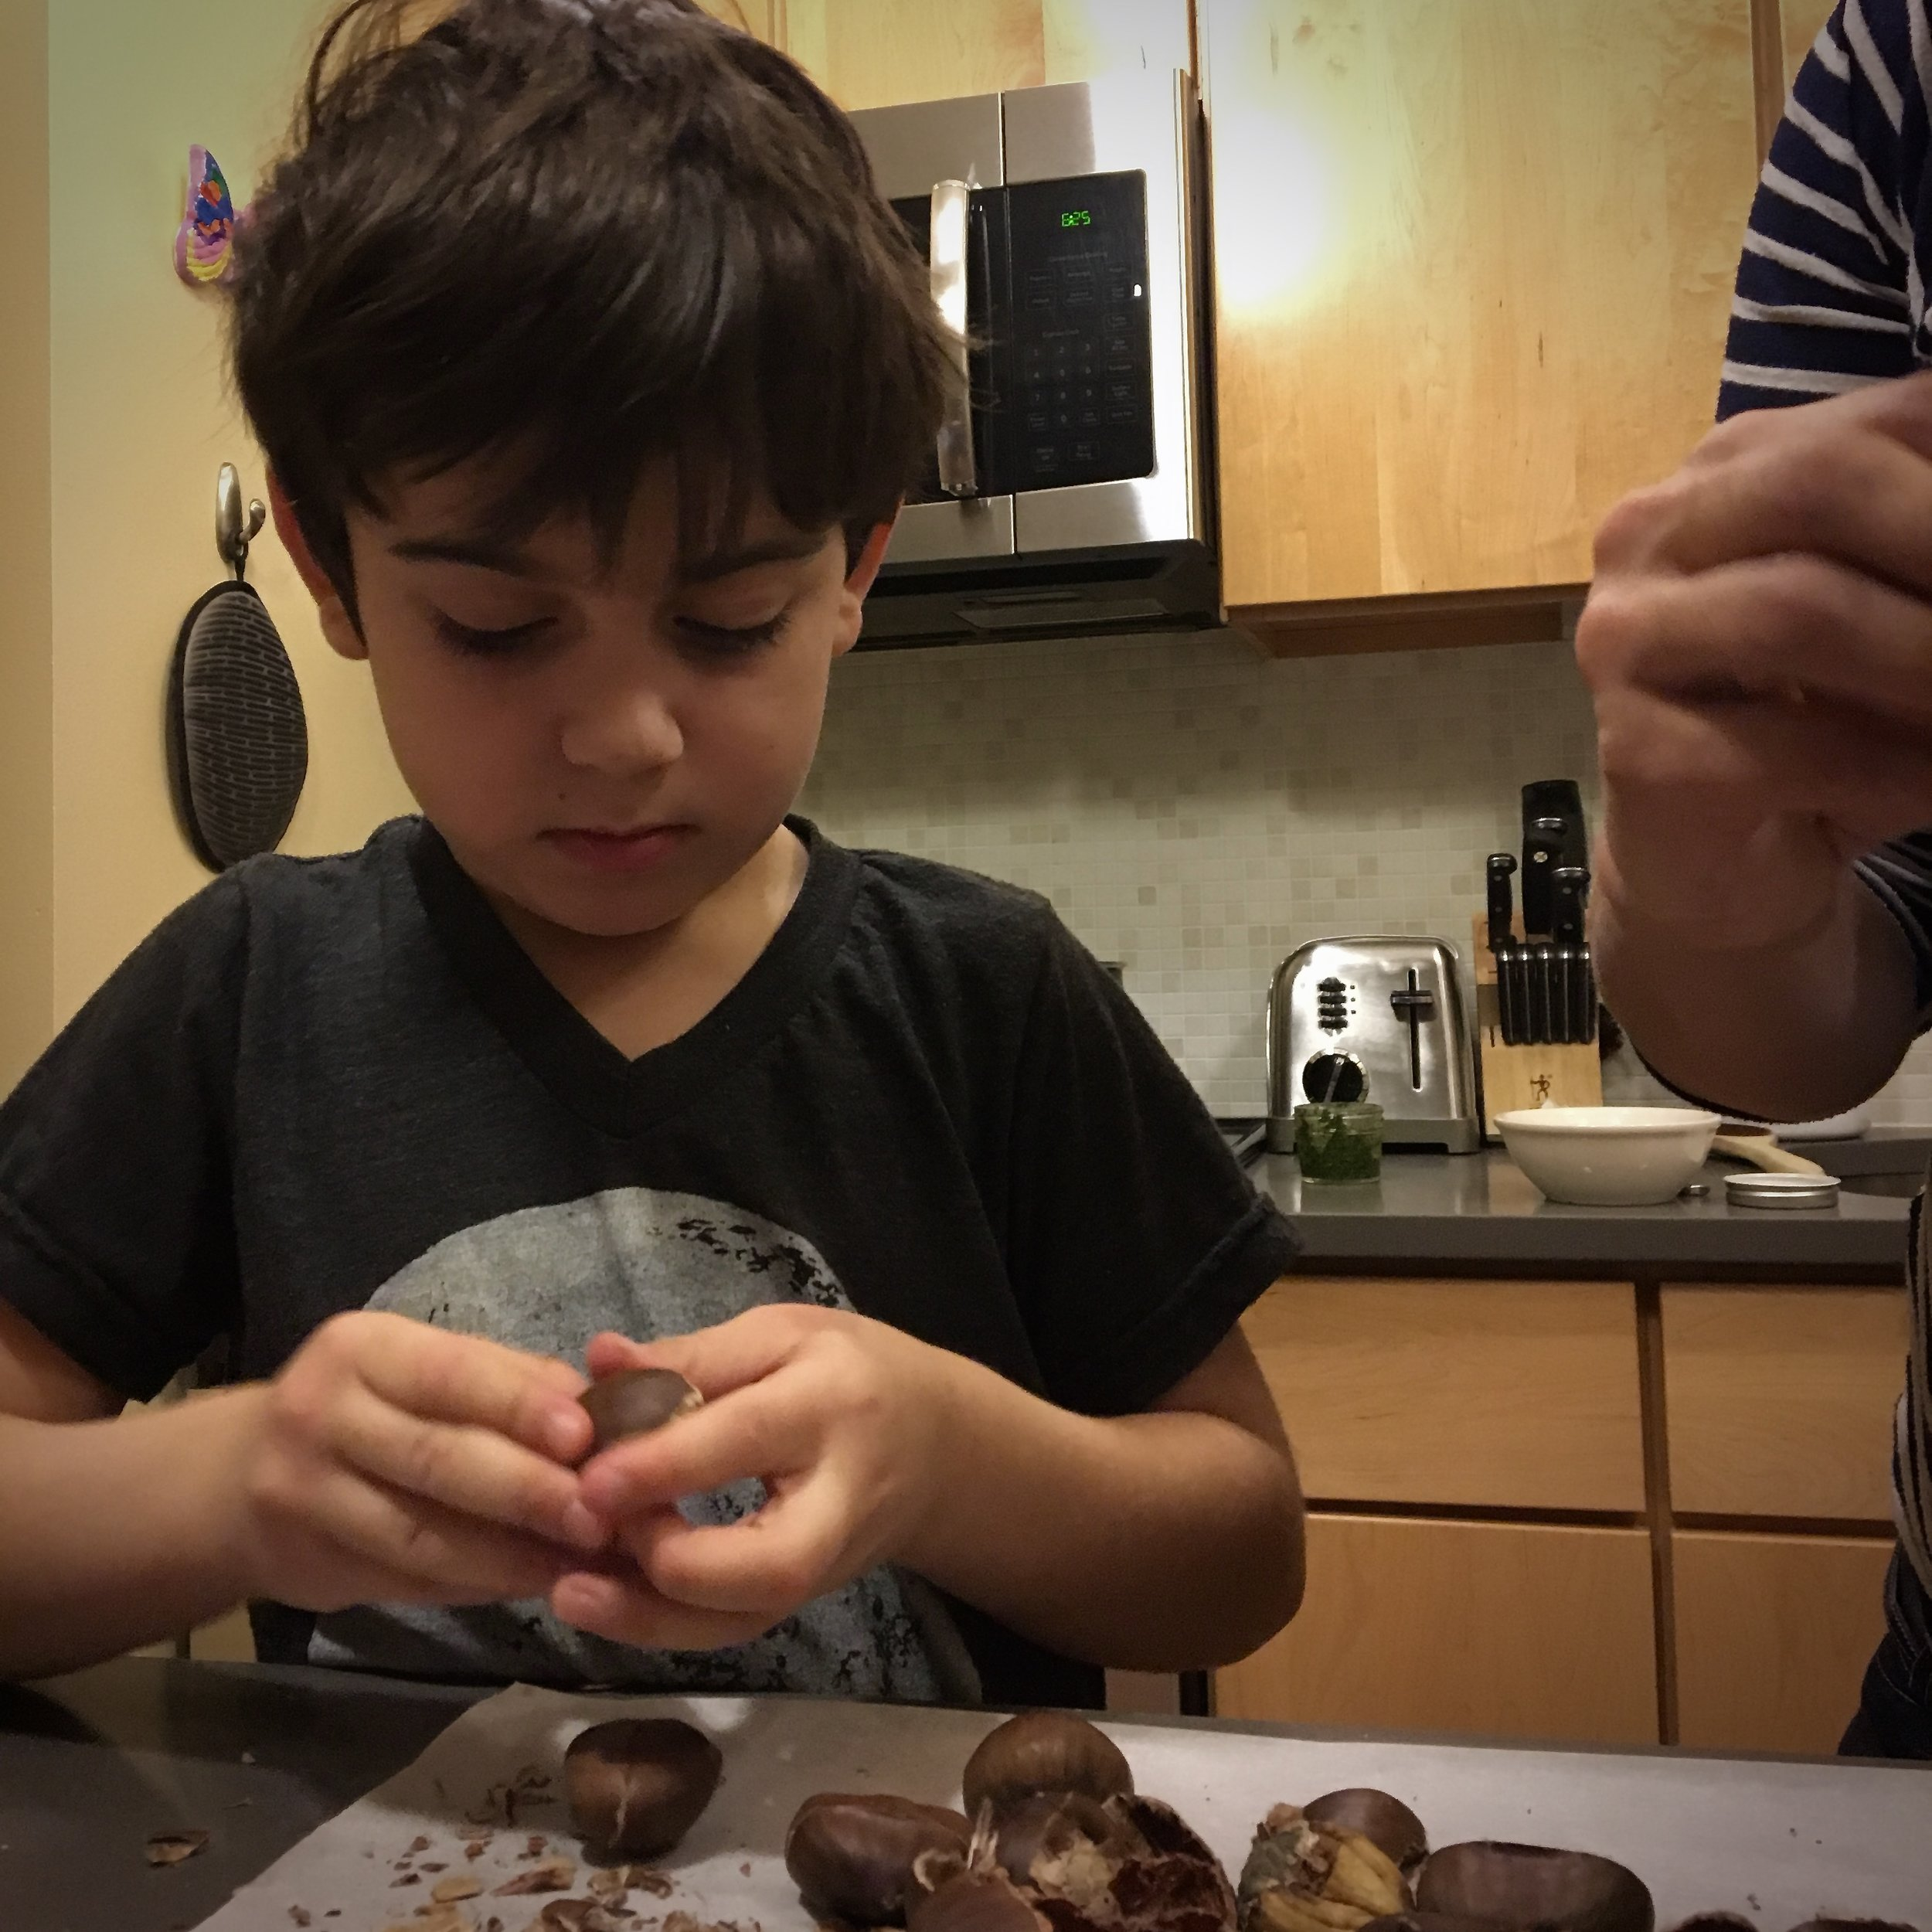 Shell nuts - Give them a pile of pistachios, chestnuts, edamame, peas, or anything else requiring separation from the shell -- even a pomegranate if you cover your child (and your kitchen) in a red apron first. Their focus and little fingers will be amused by this task for hours.